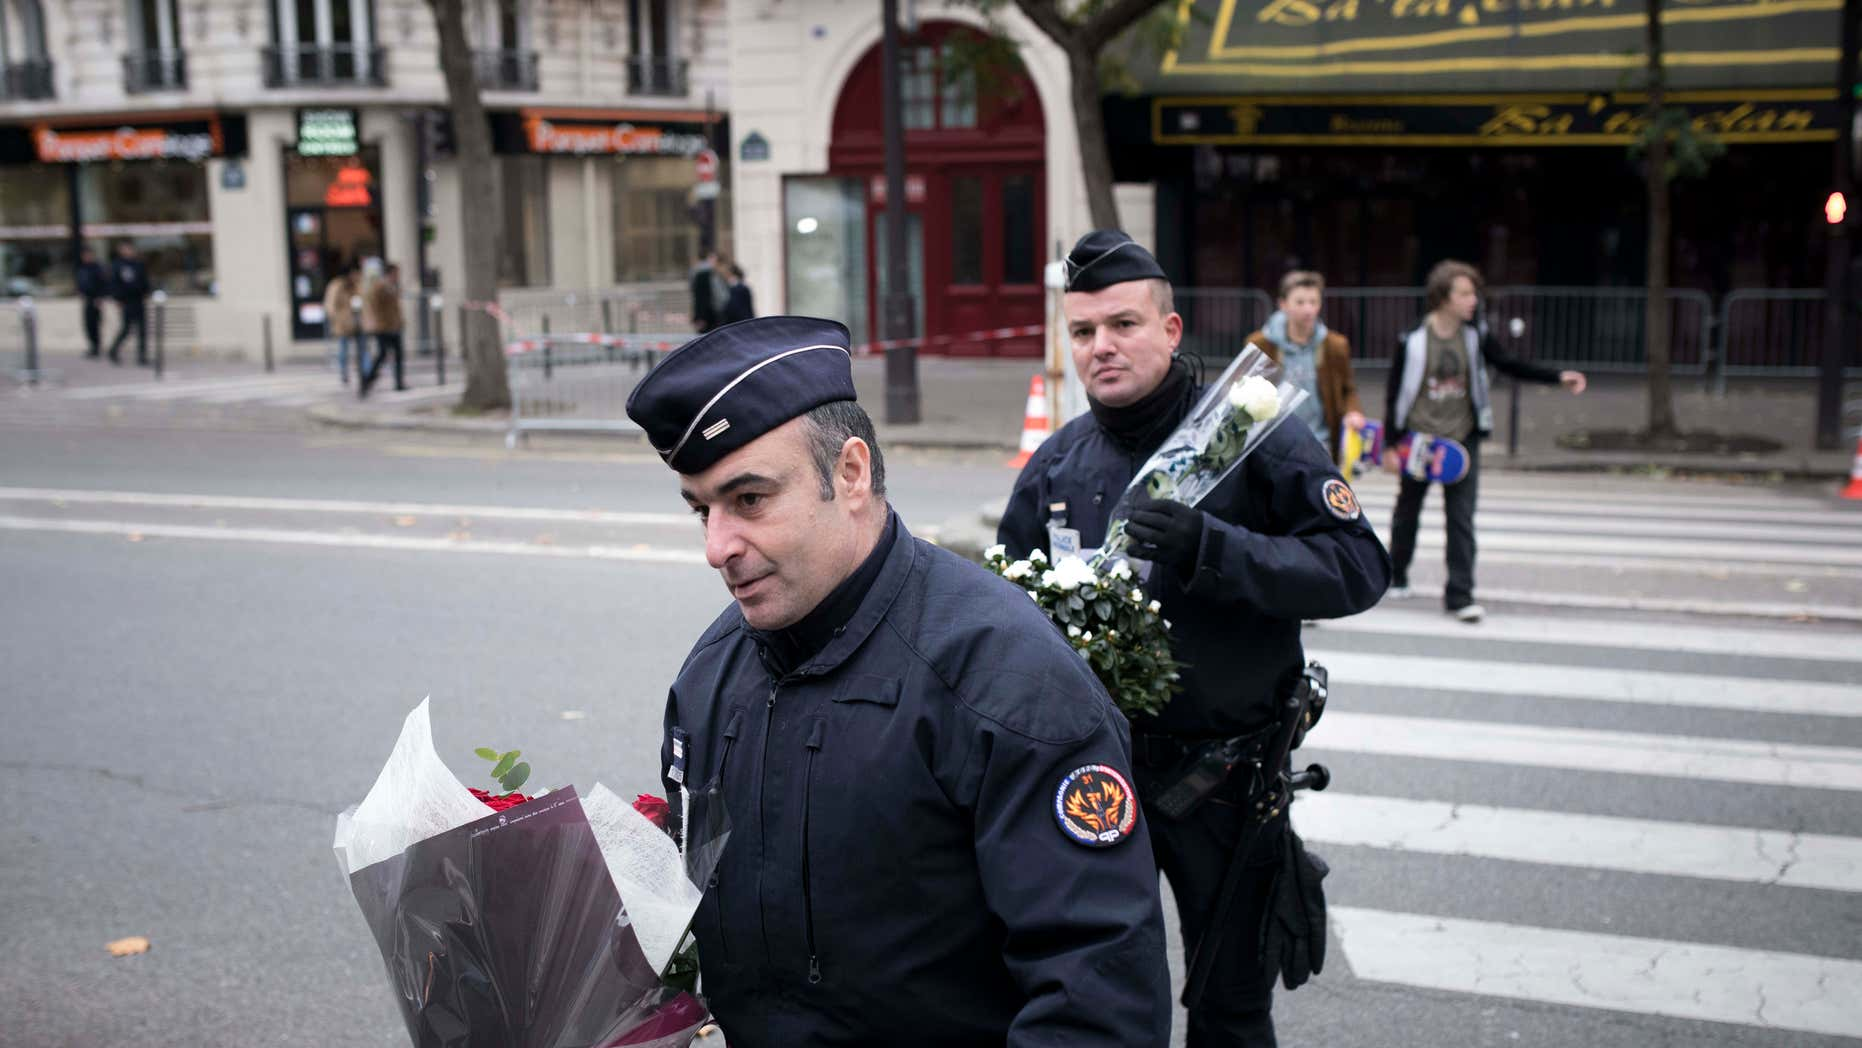 Nov. 12, 2016: Police officers hold flowers, given by people near the Bataclan concert hall in Paris, France.